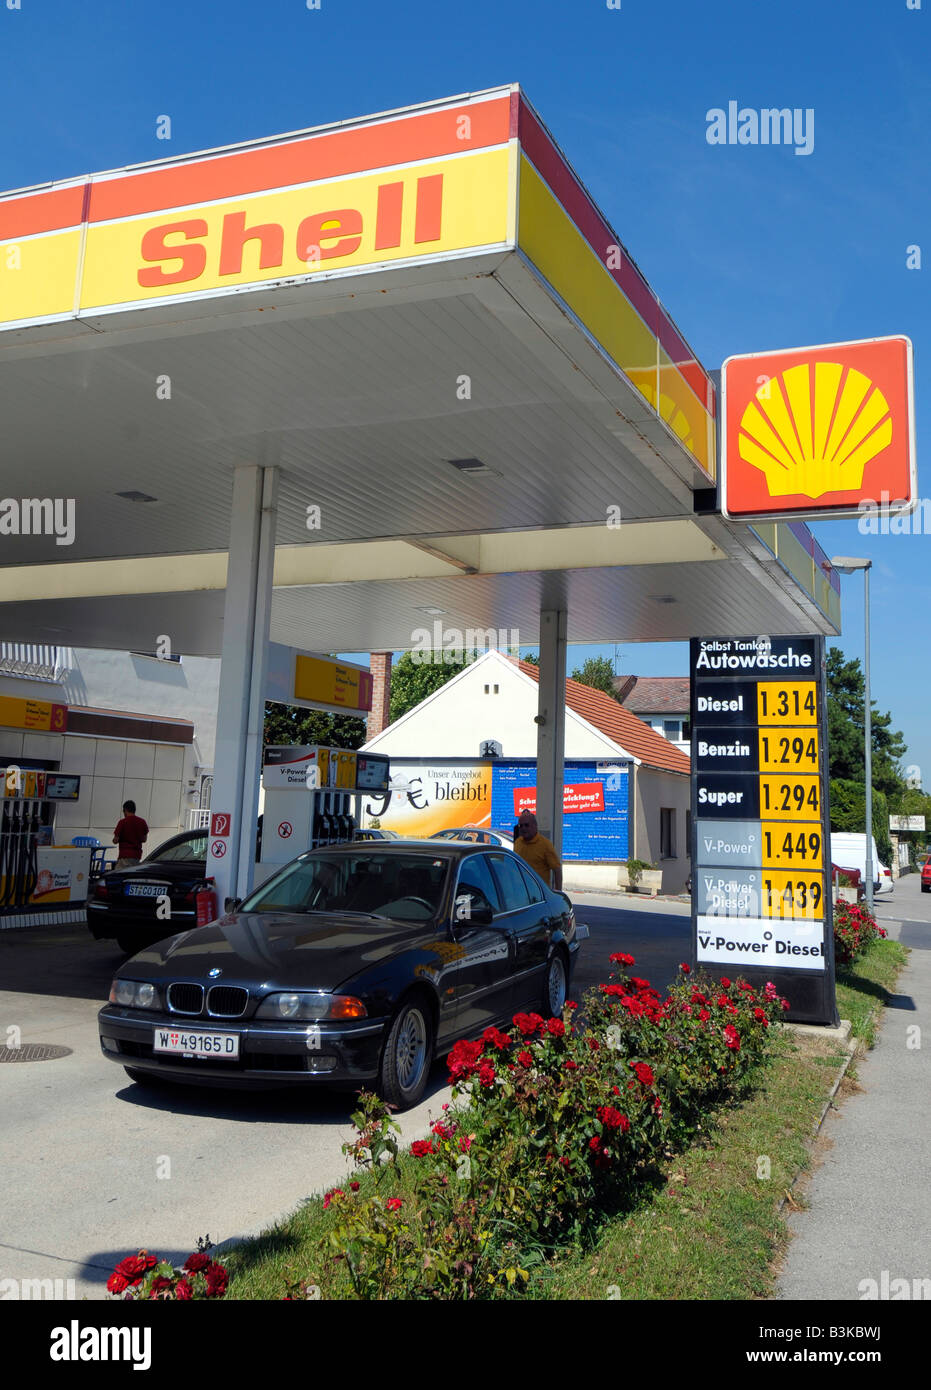 Shell petrol station, Austria - Stock Image